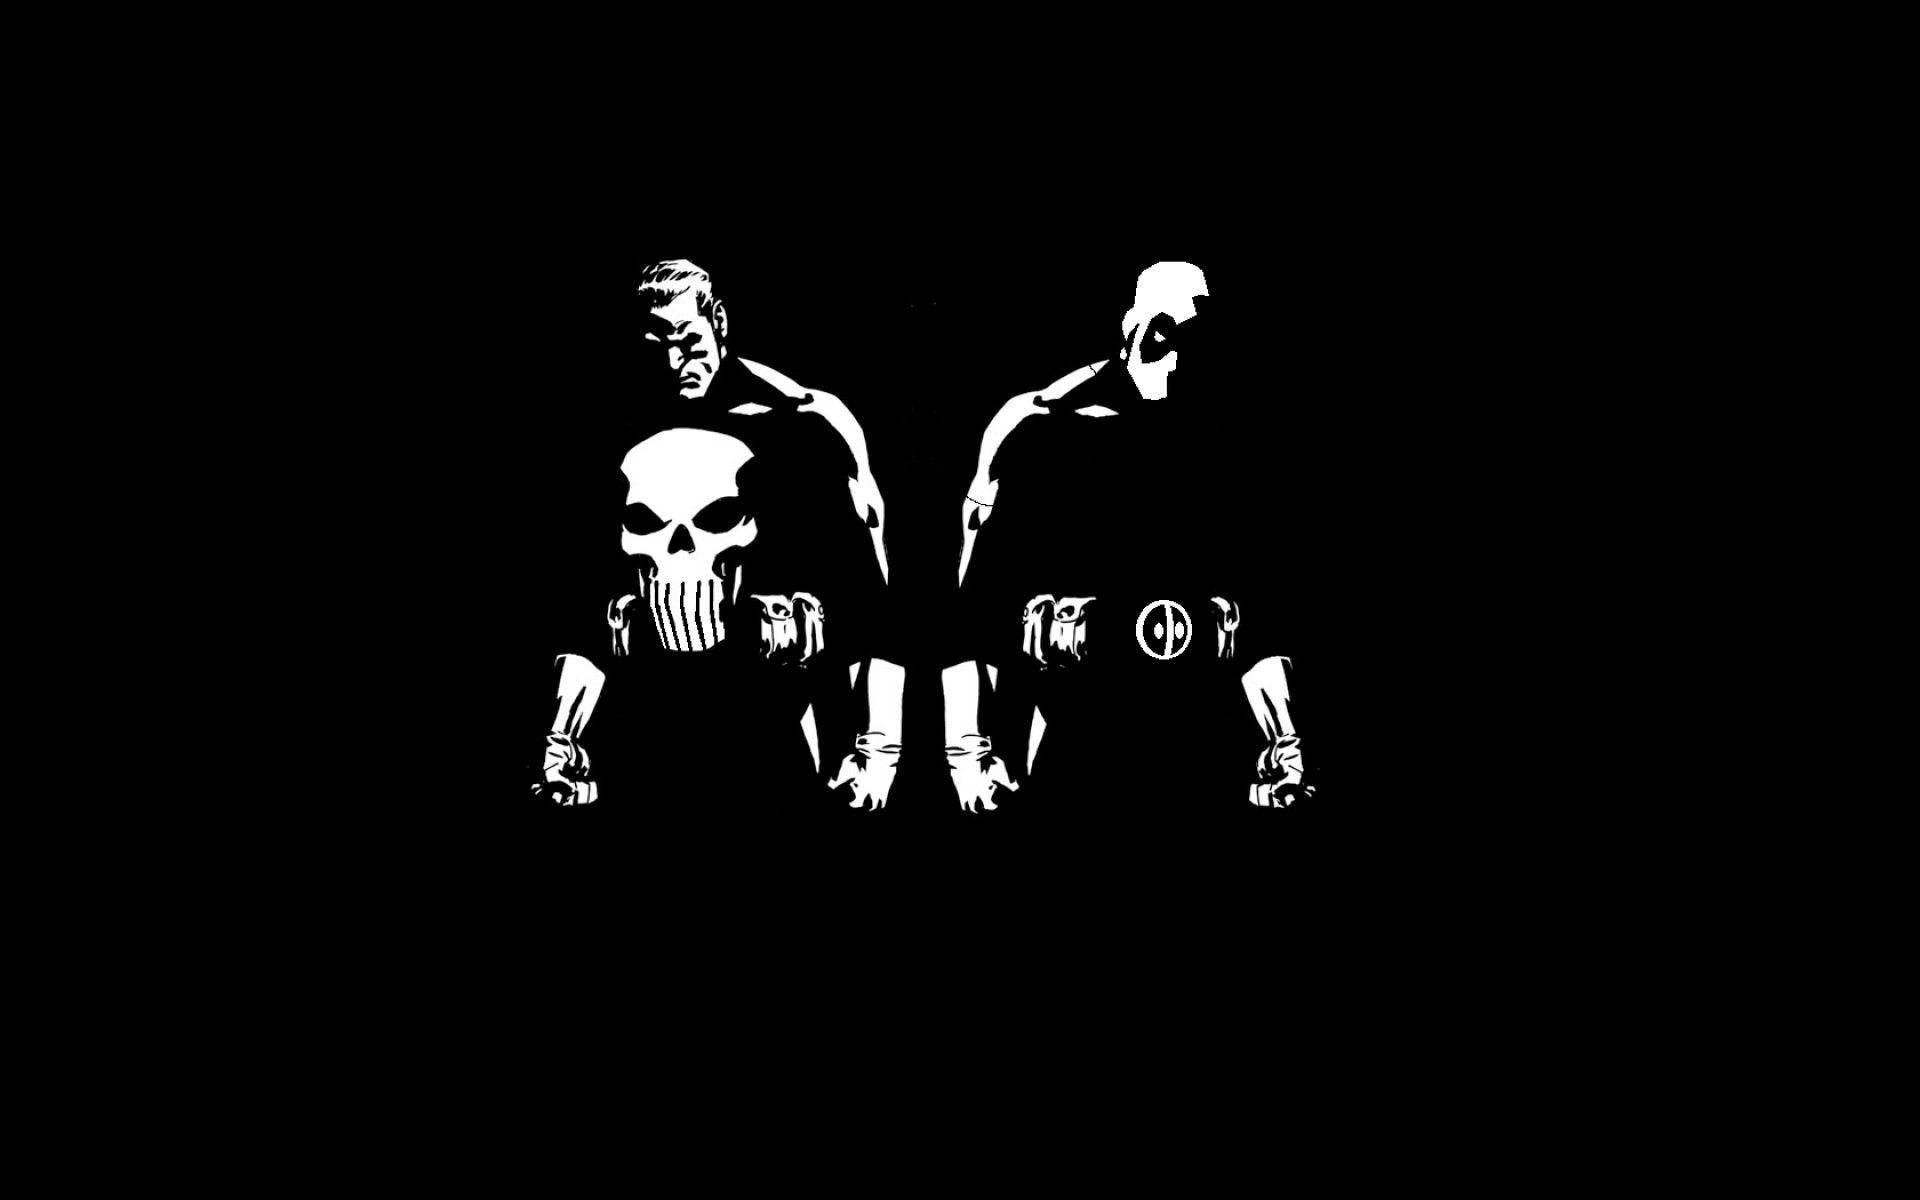 Punisher Wallpaper 1920x1080 81 Images